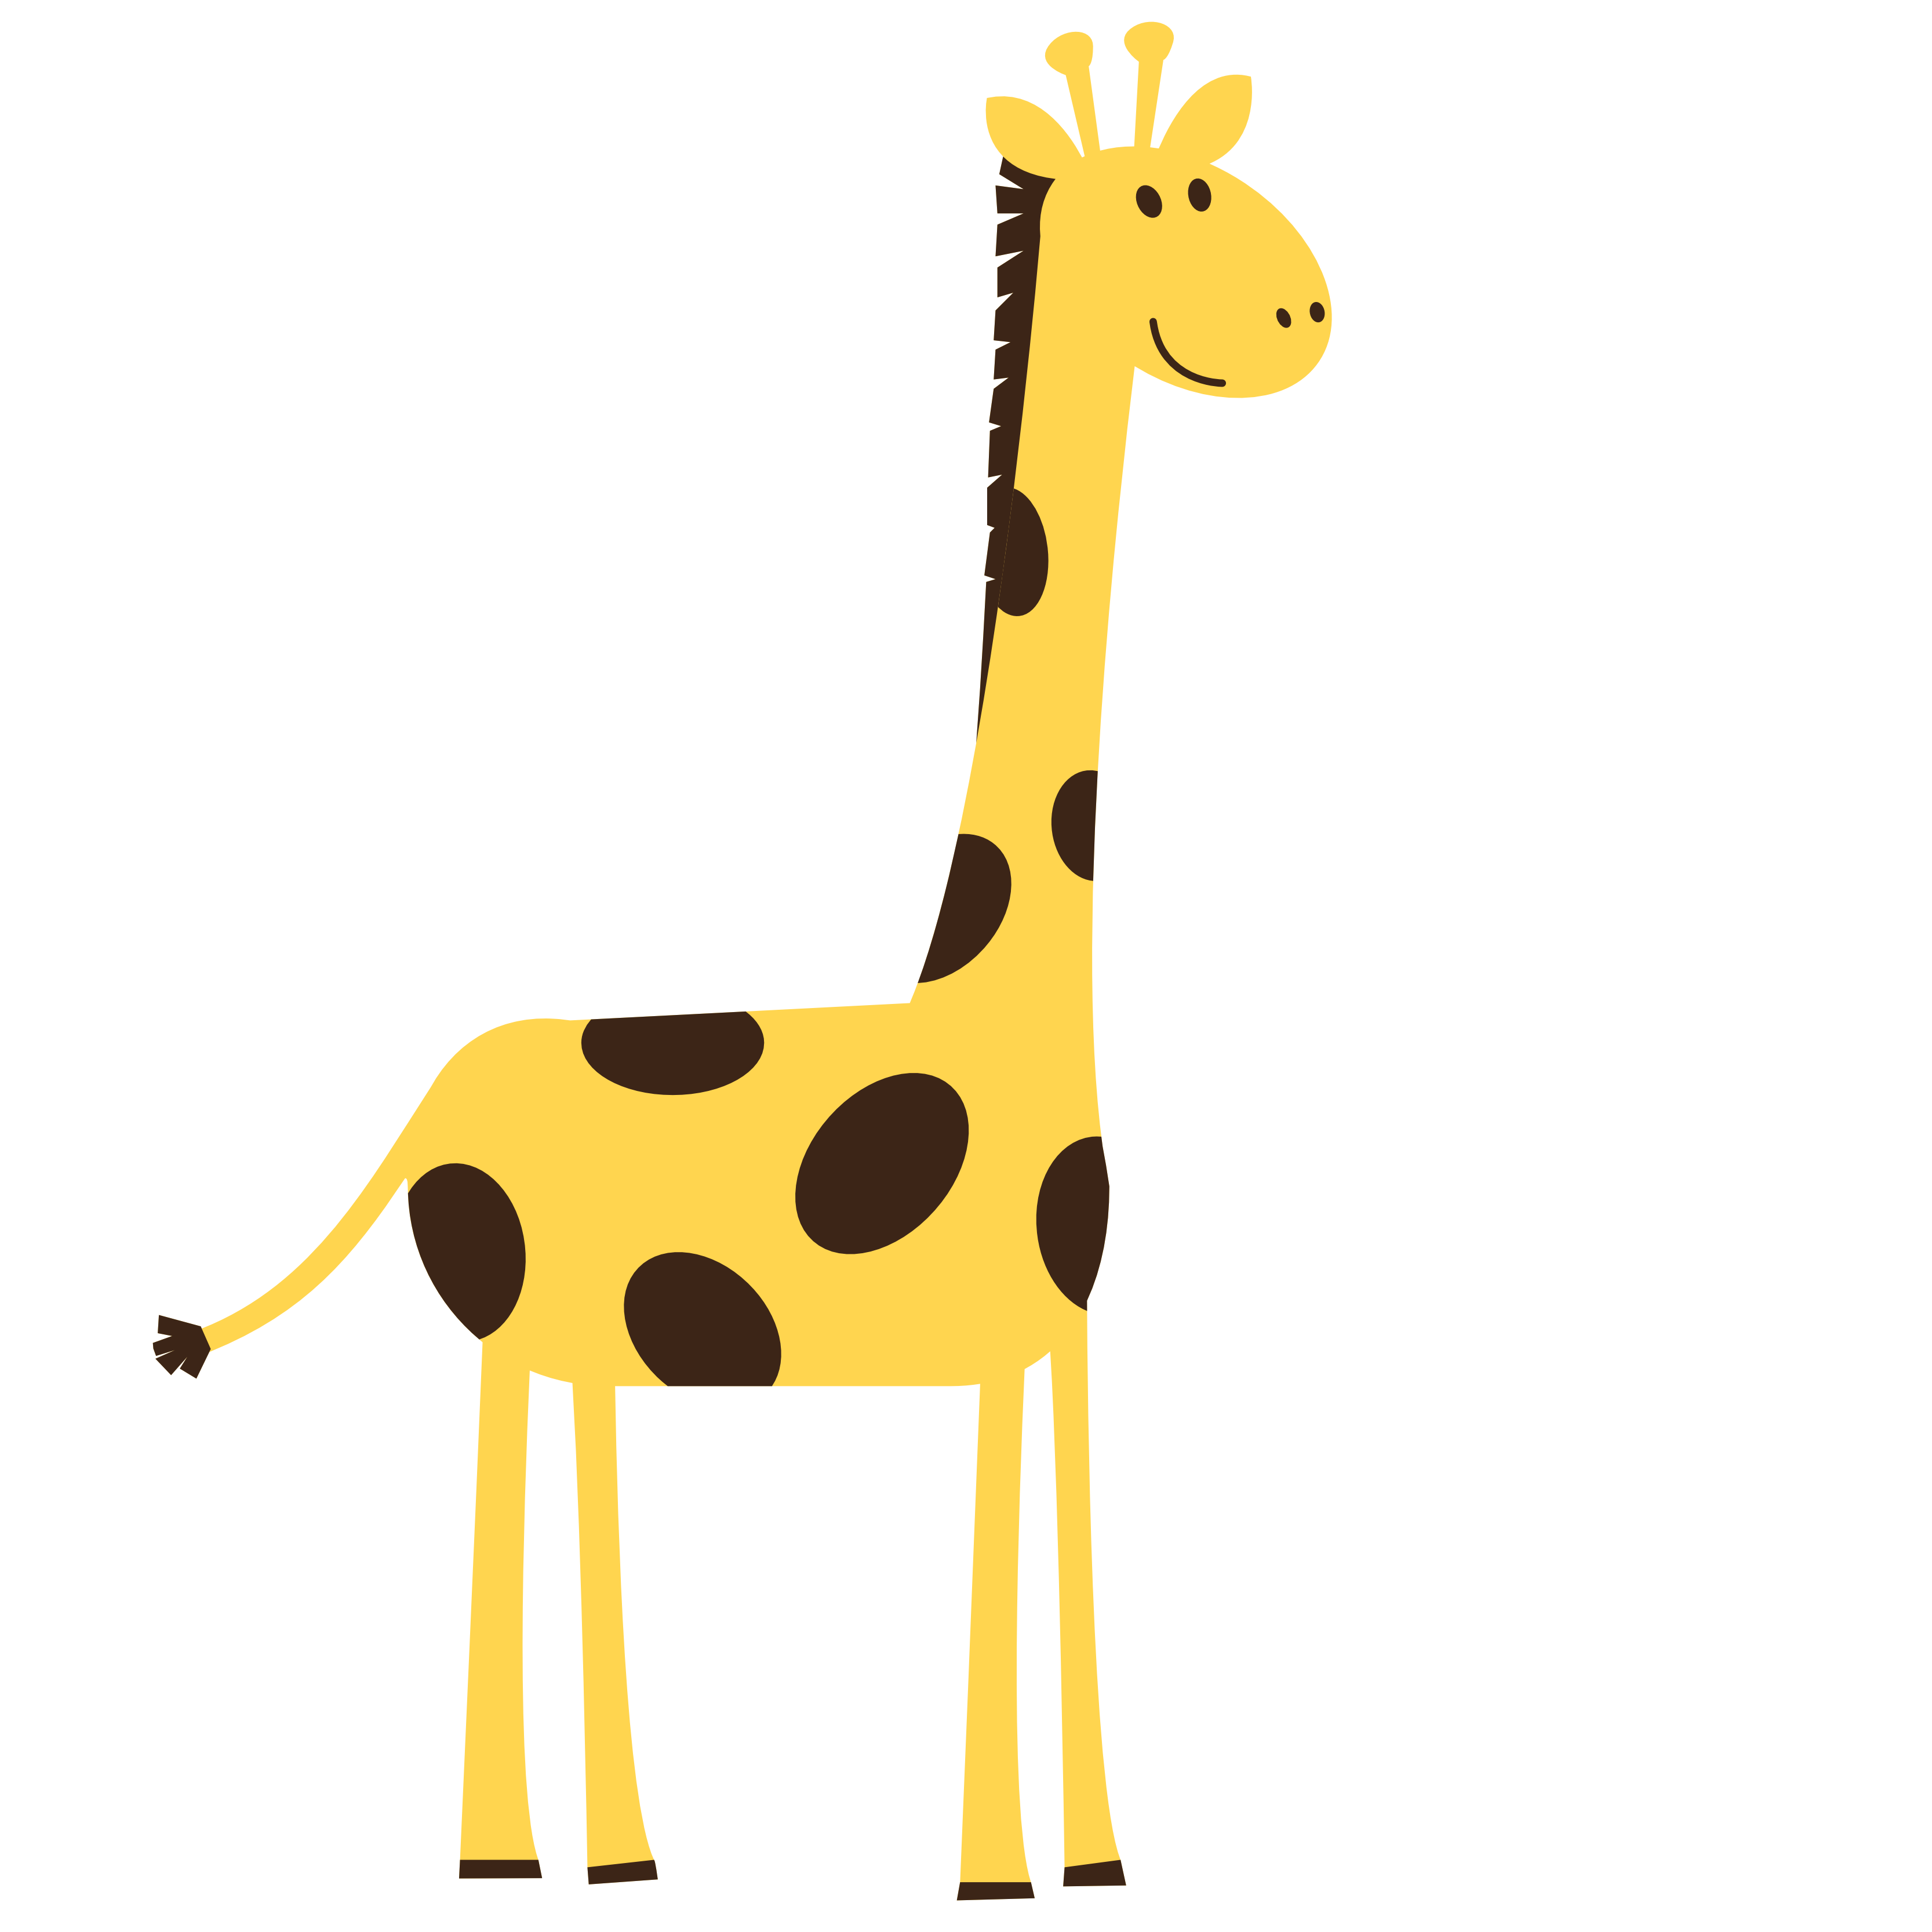 Free Transparent Giraffe, Download Free Clip Art, Free Clip